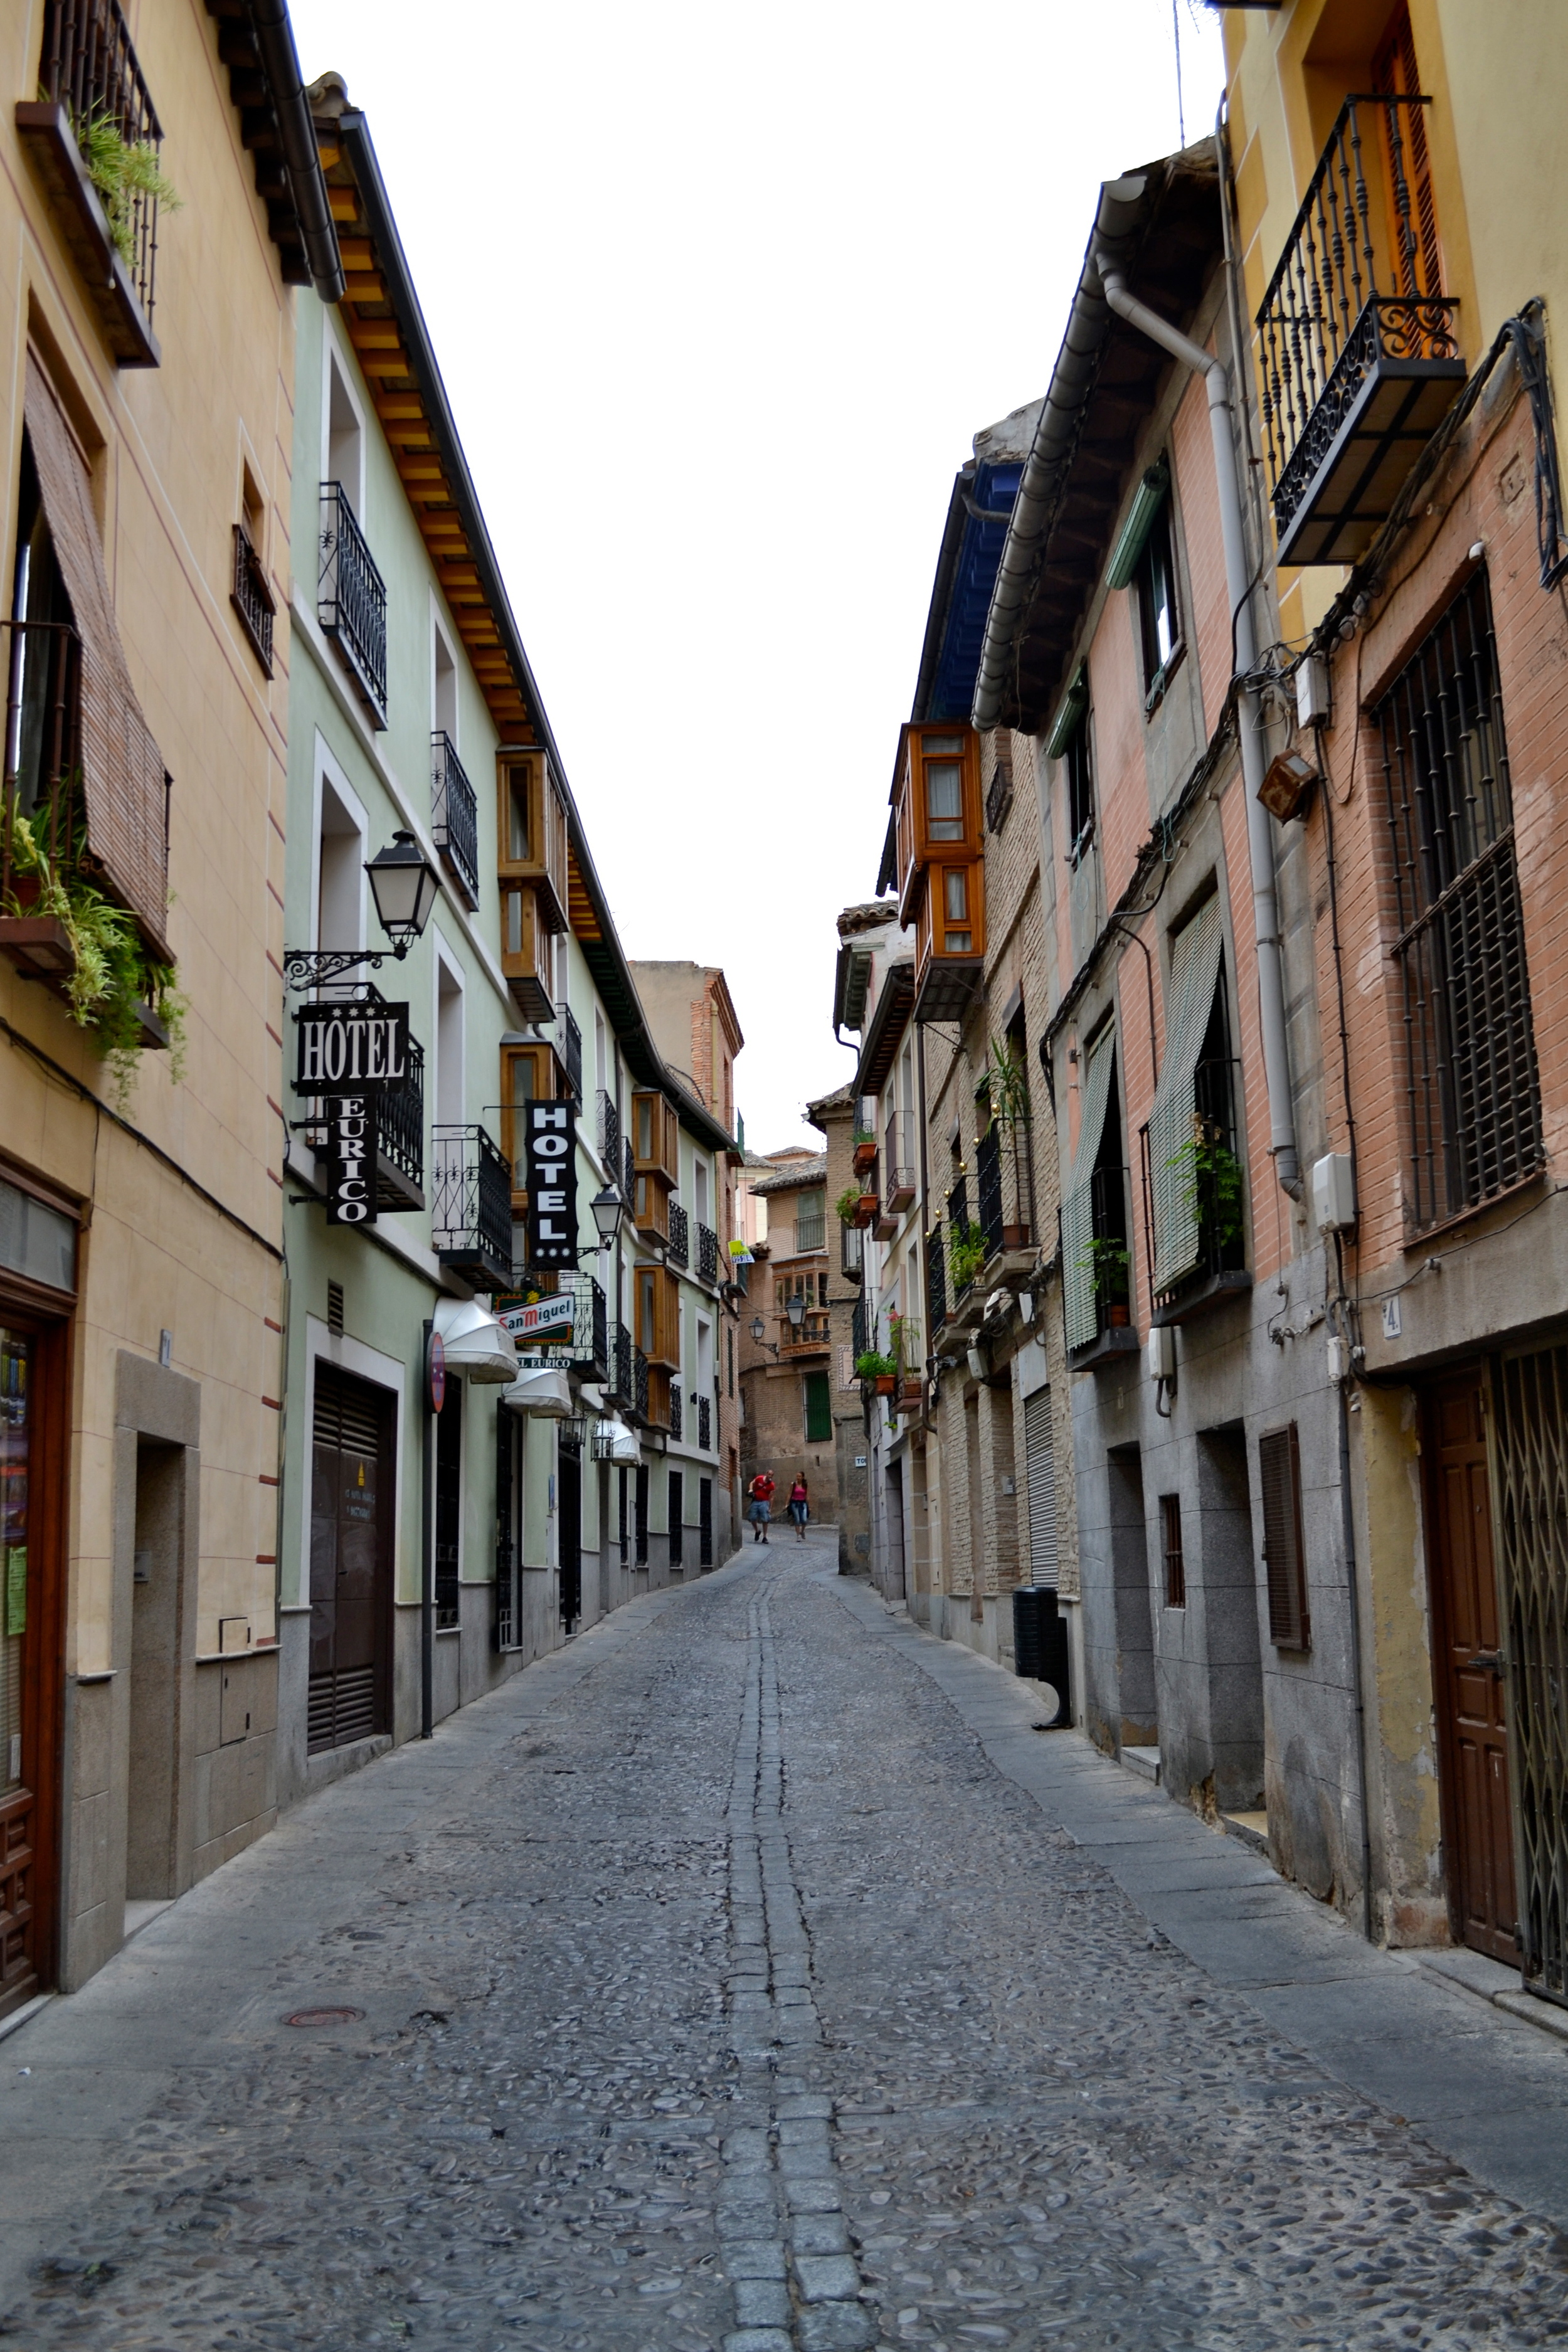 A street in Toledo, showcasing its European charms.